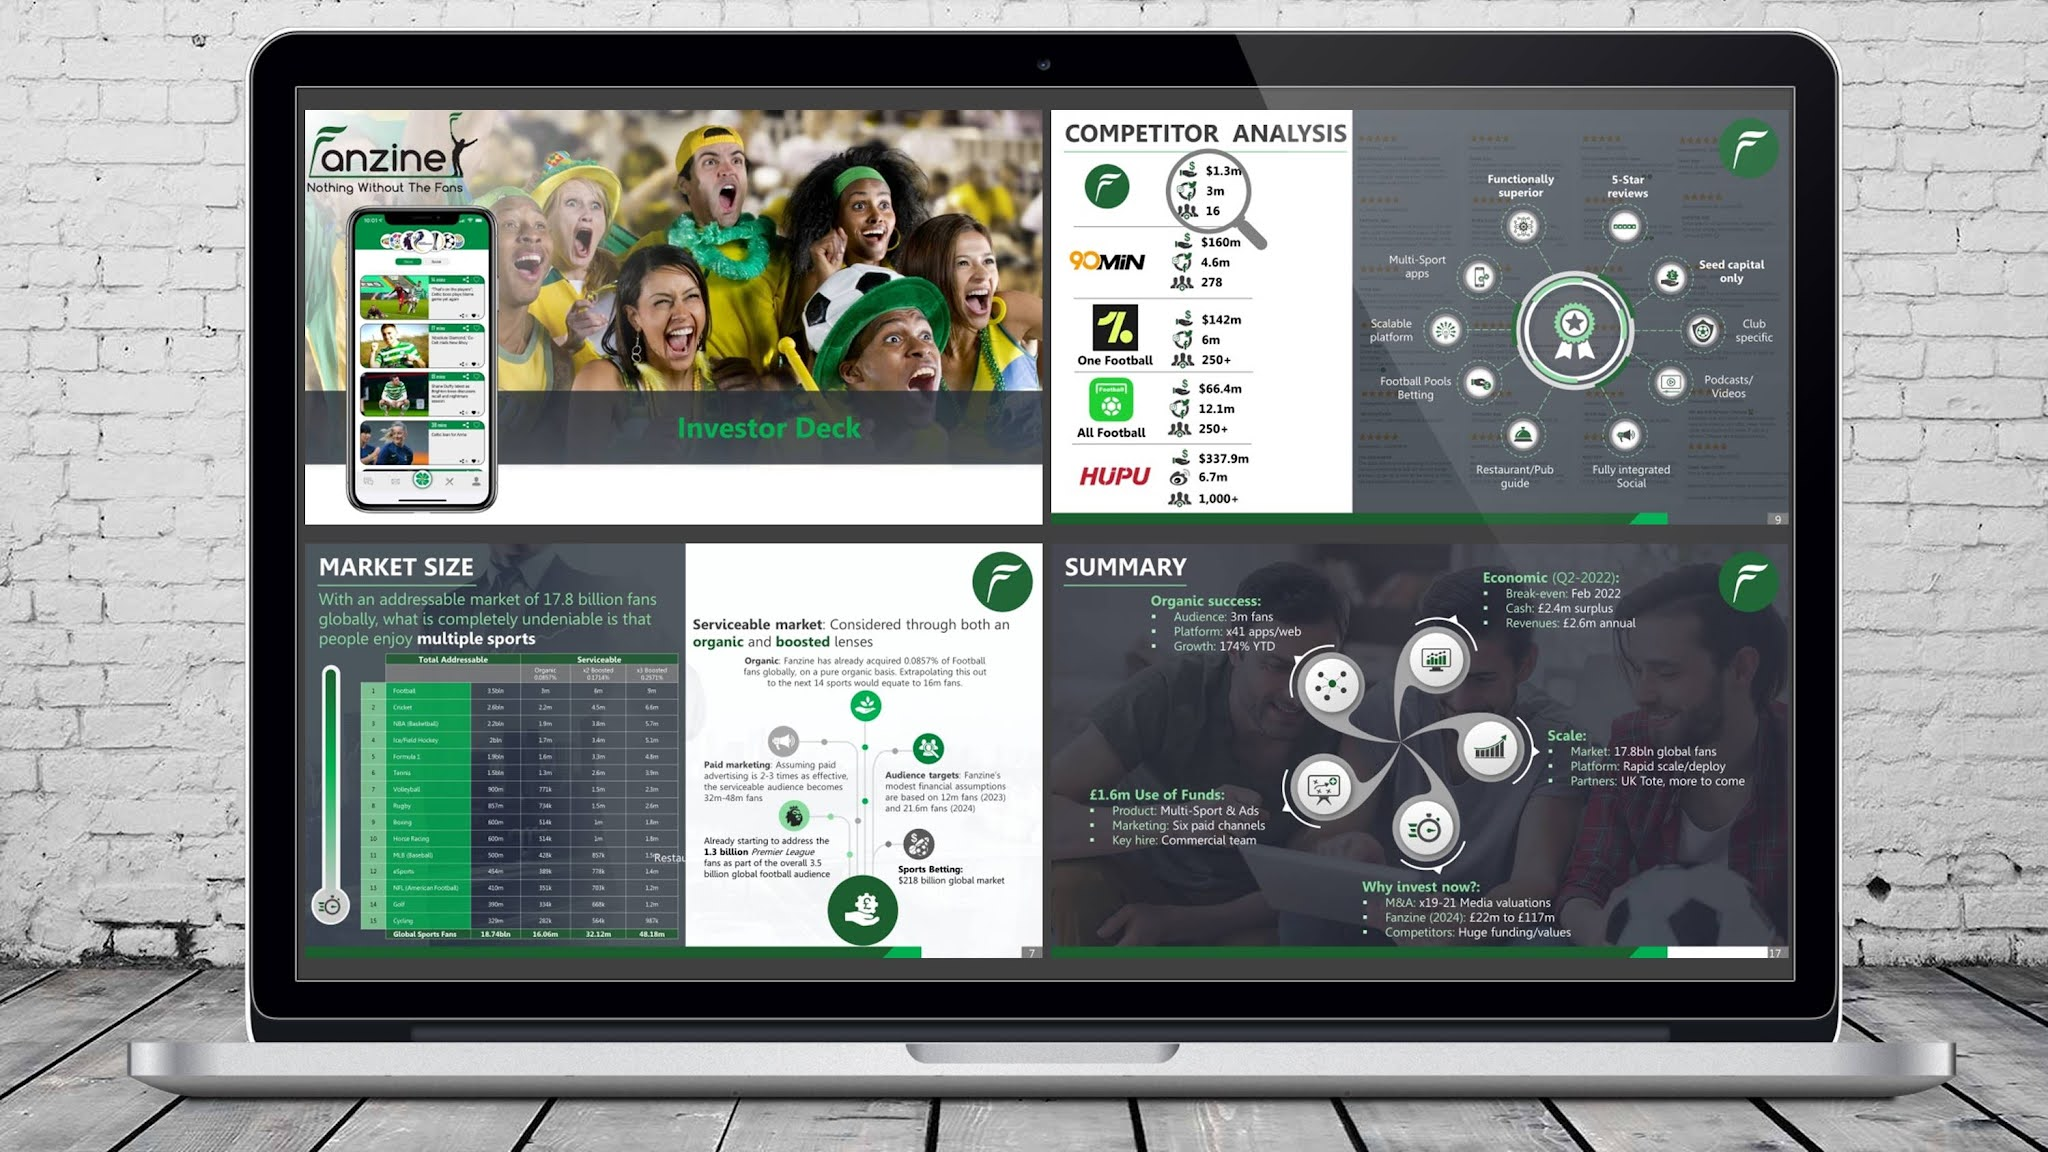 Sports mobile application PowerPoint investor pitch deck that demonstrates all the features and advantages of a platform for Premier League fans.